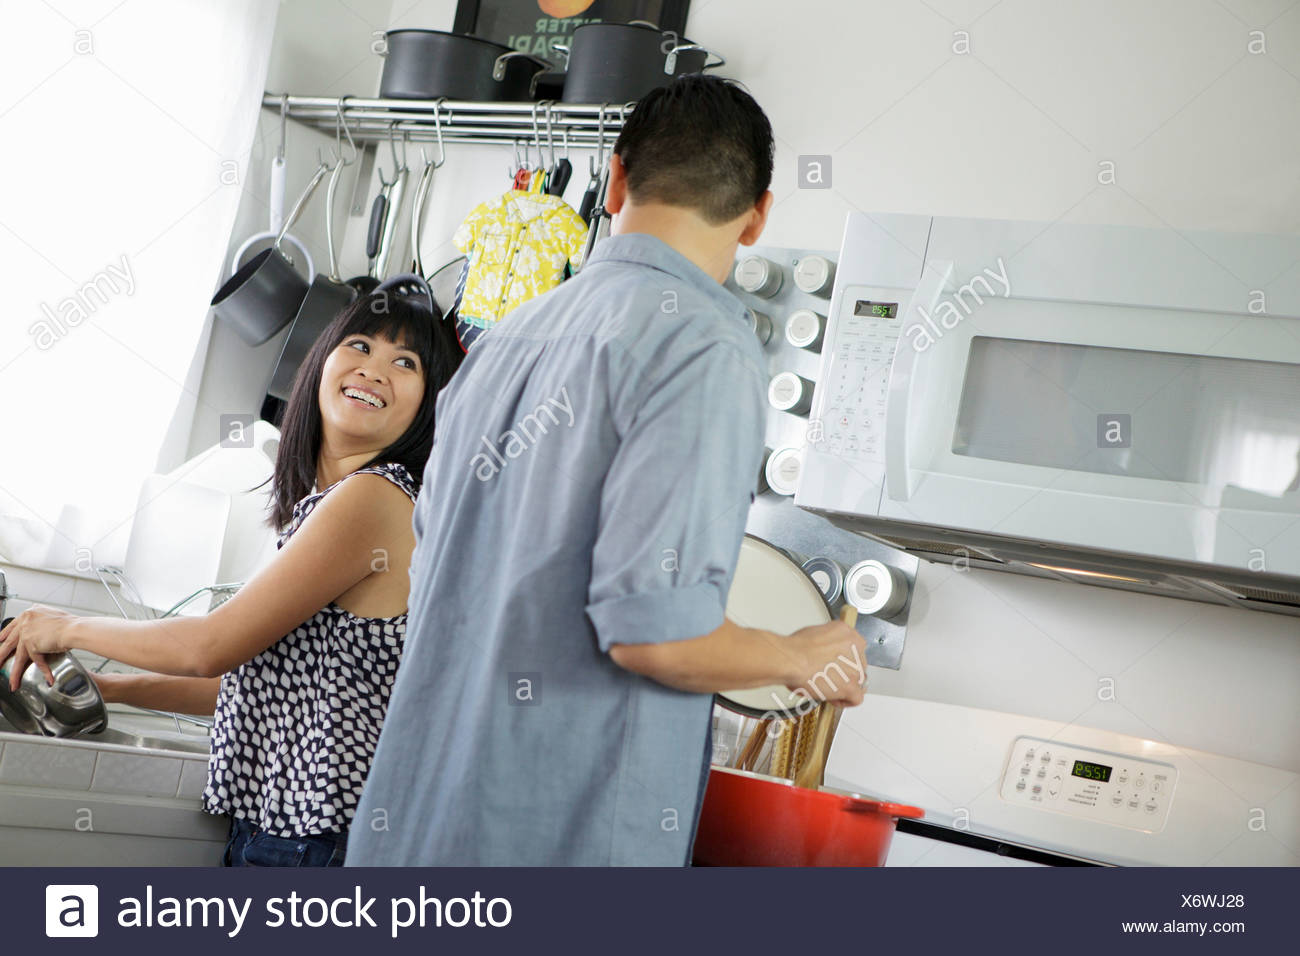 Female Chinese Cook Stock Photos & Female Chinese Cook Stock Images ...